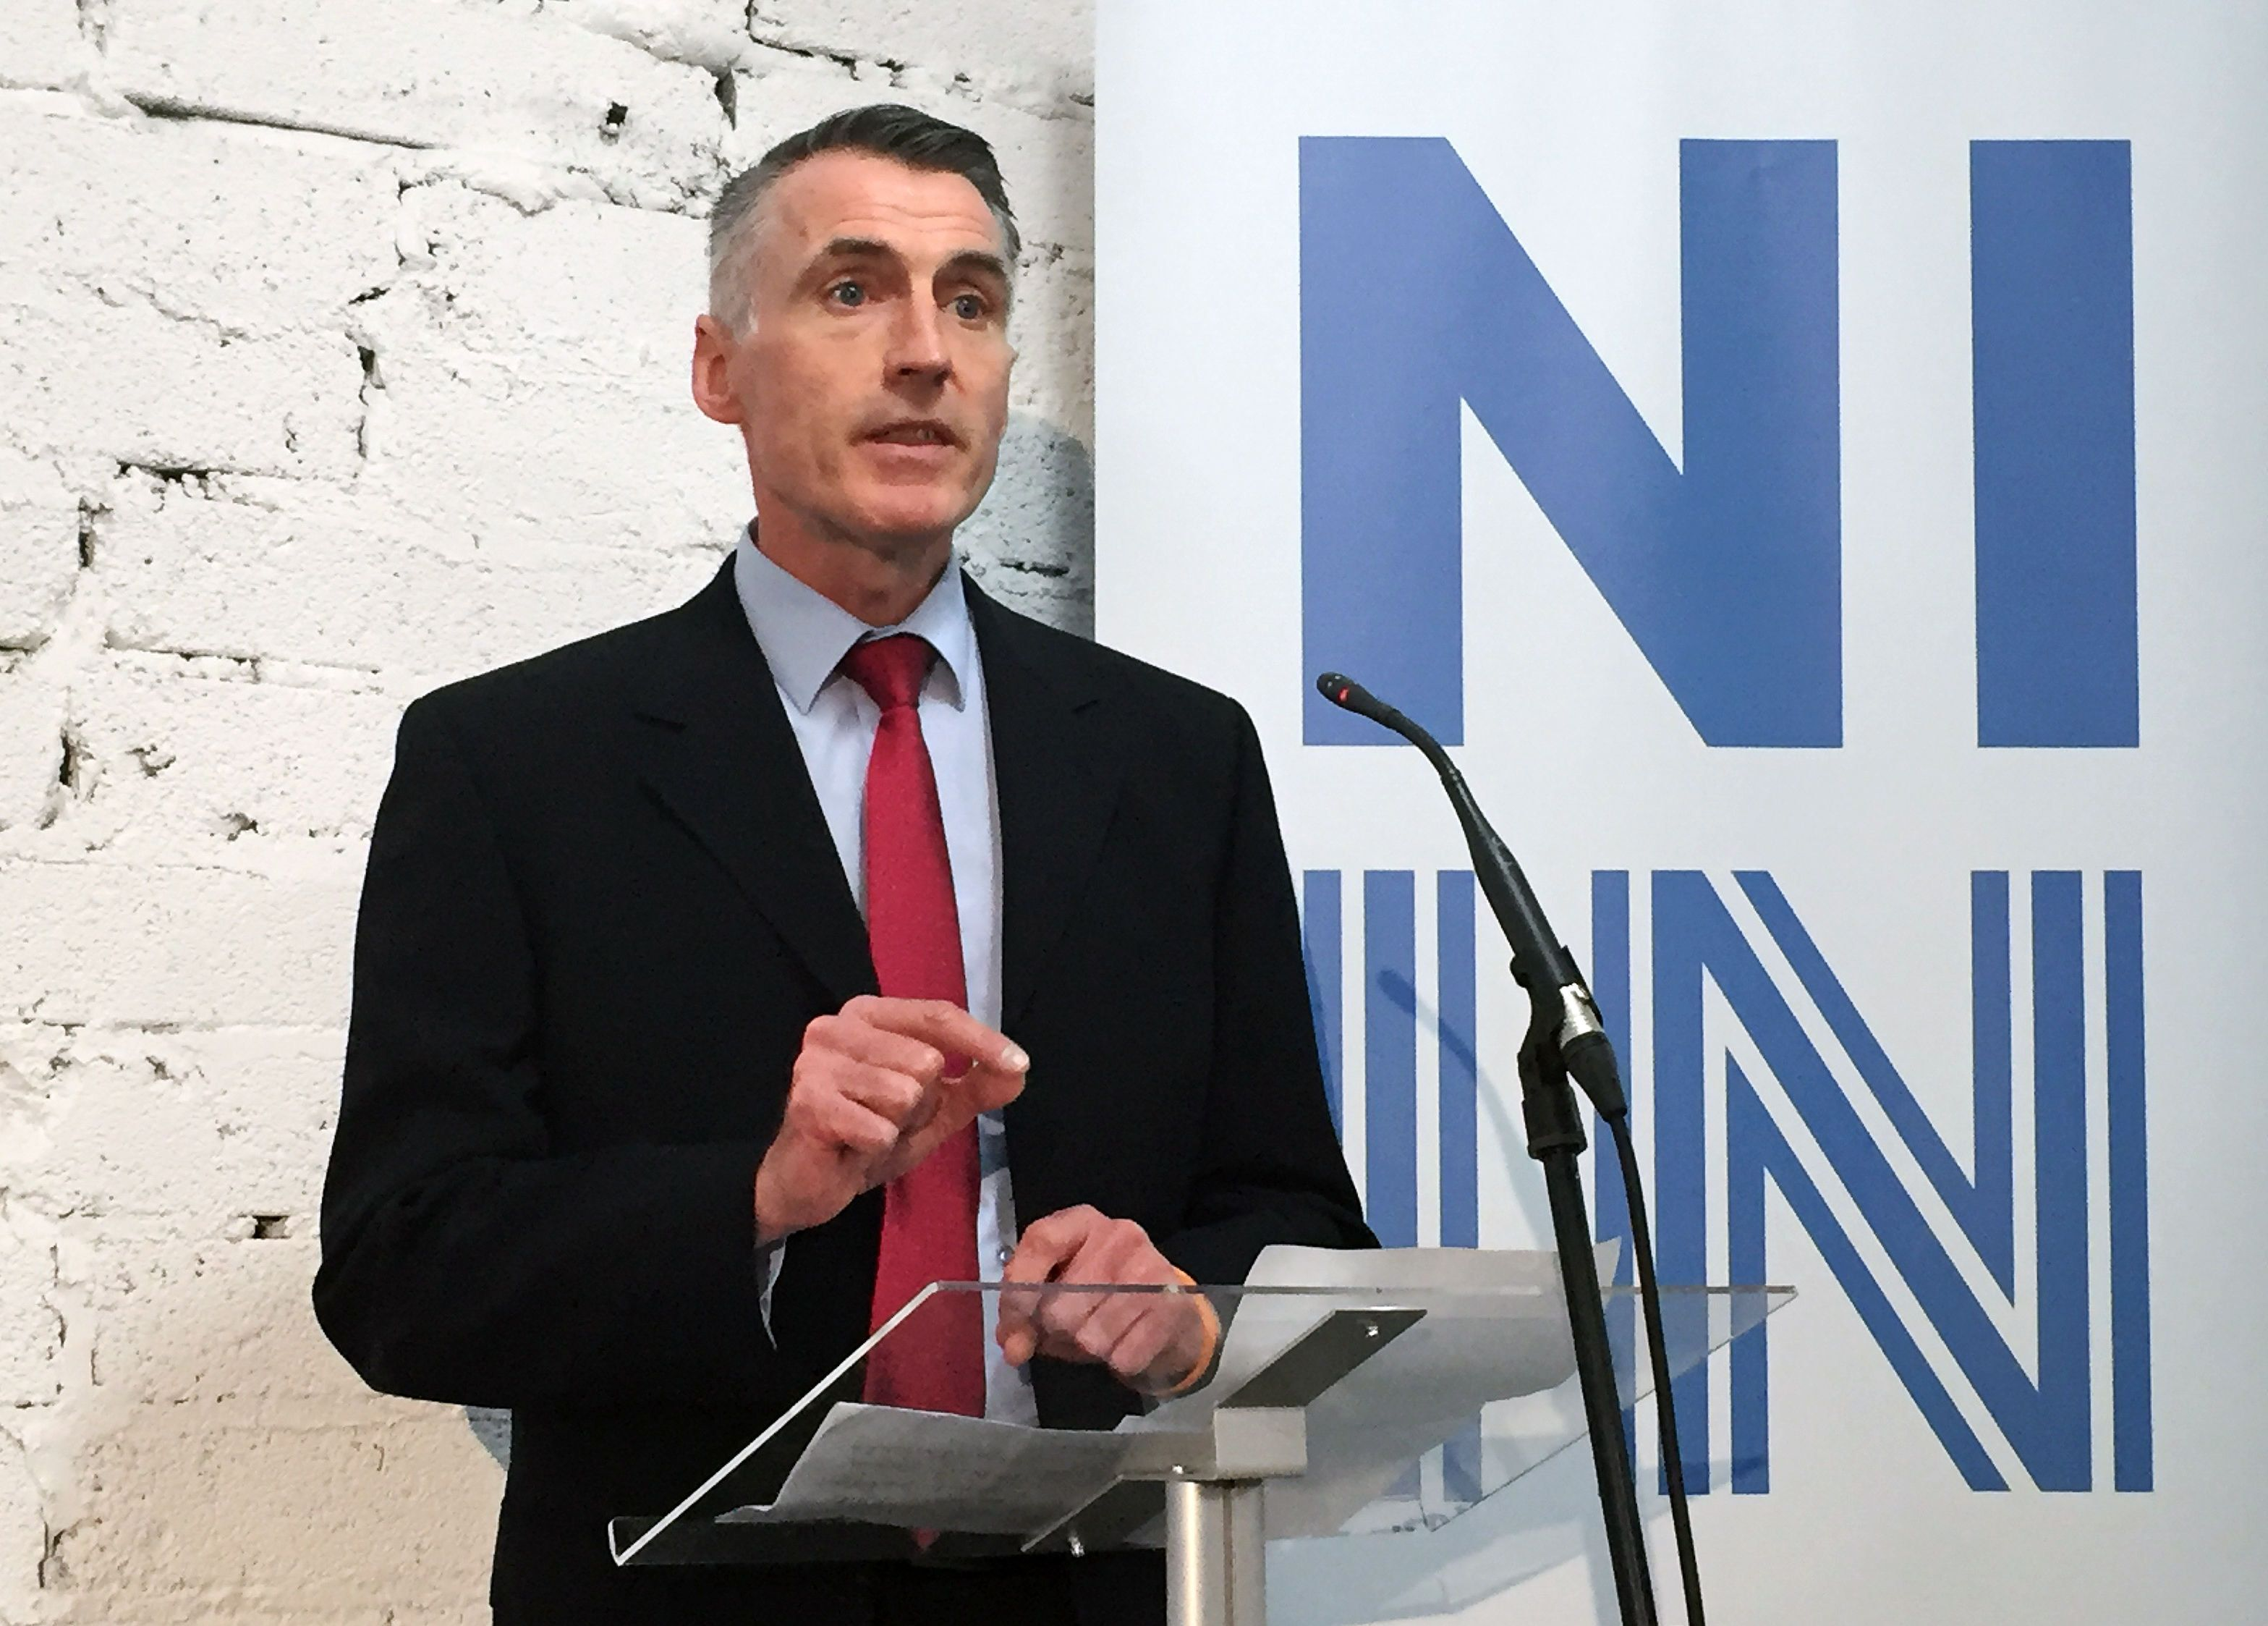 BEST QUALITY AVAILABLEDeclan Kearney, Sinn Fein's national chairman speaking at the Northern Ireland Stronger In EU campaign launch event at College St in Belfast.